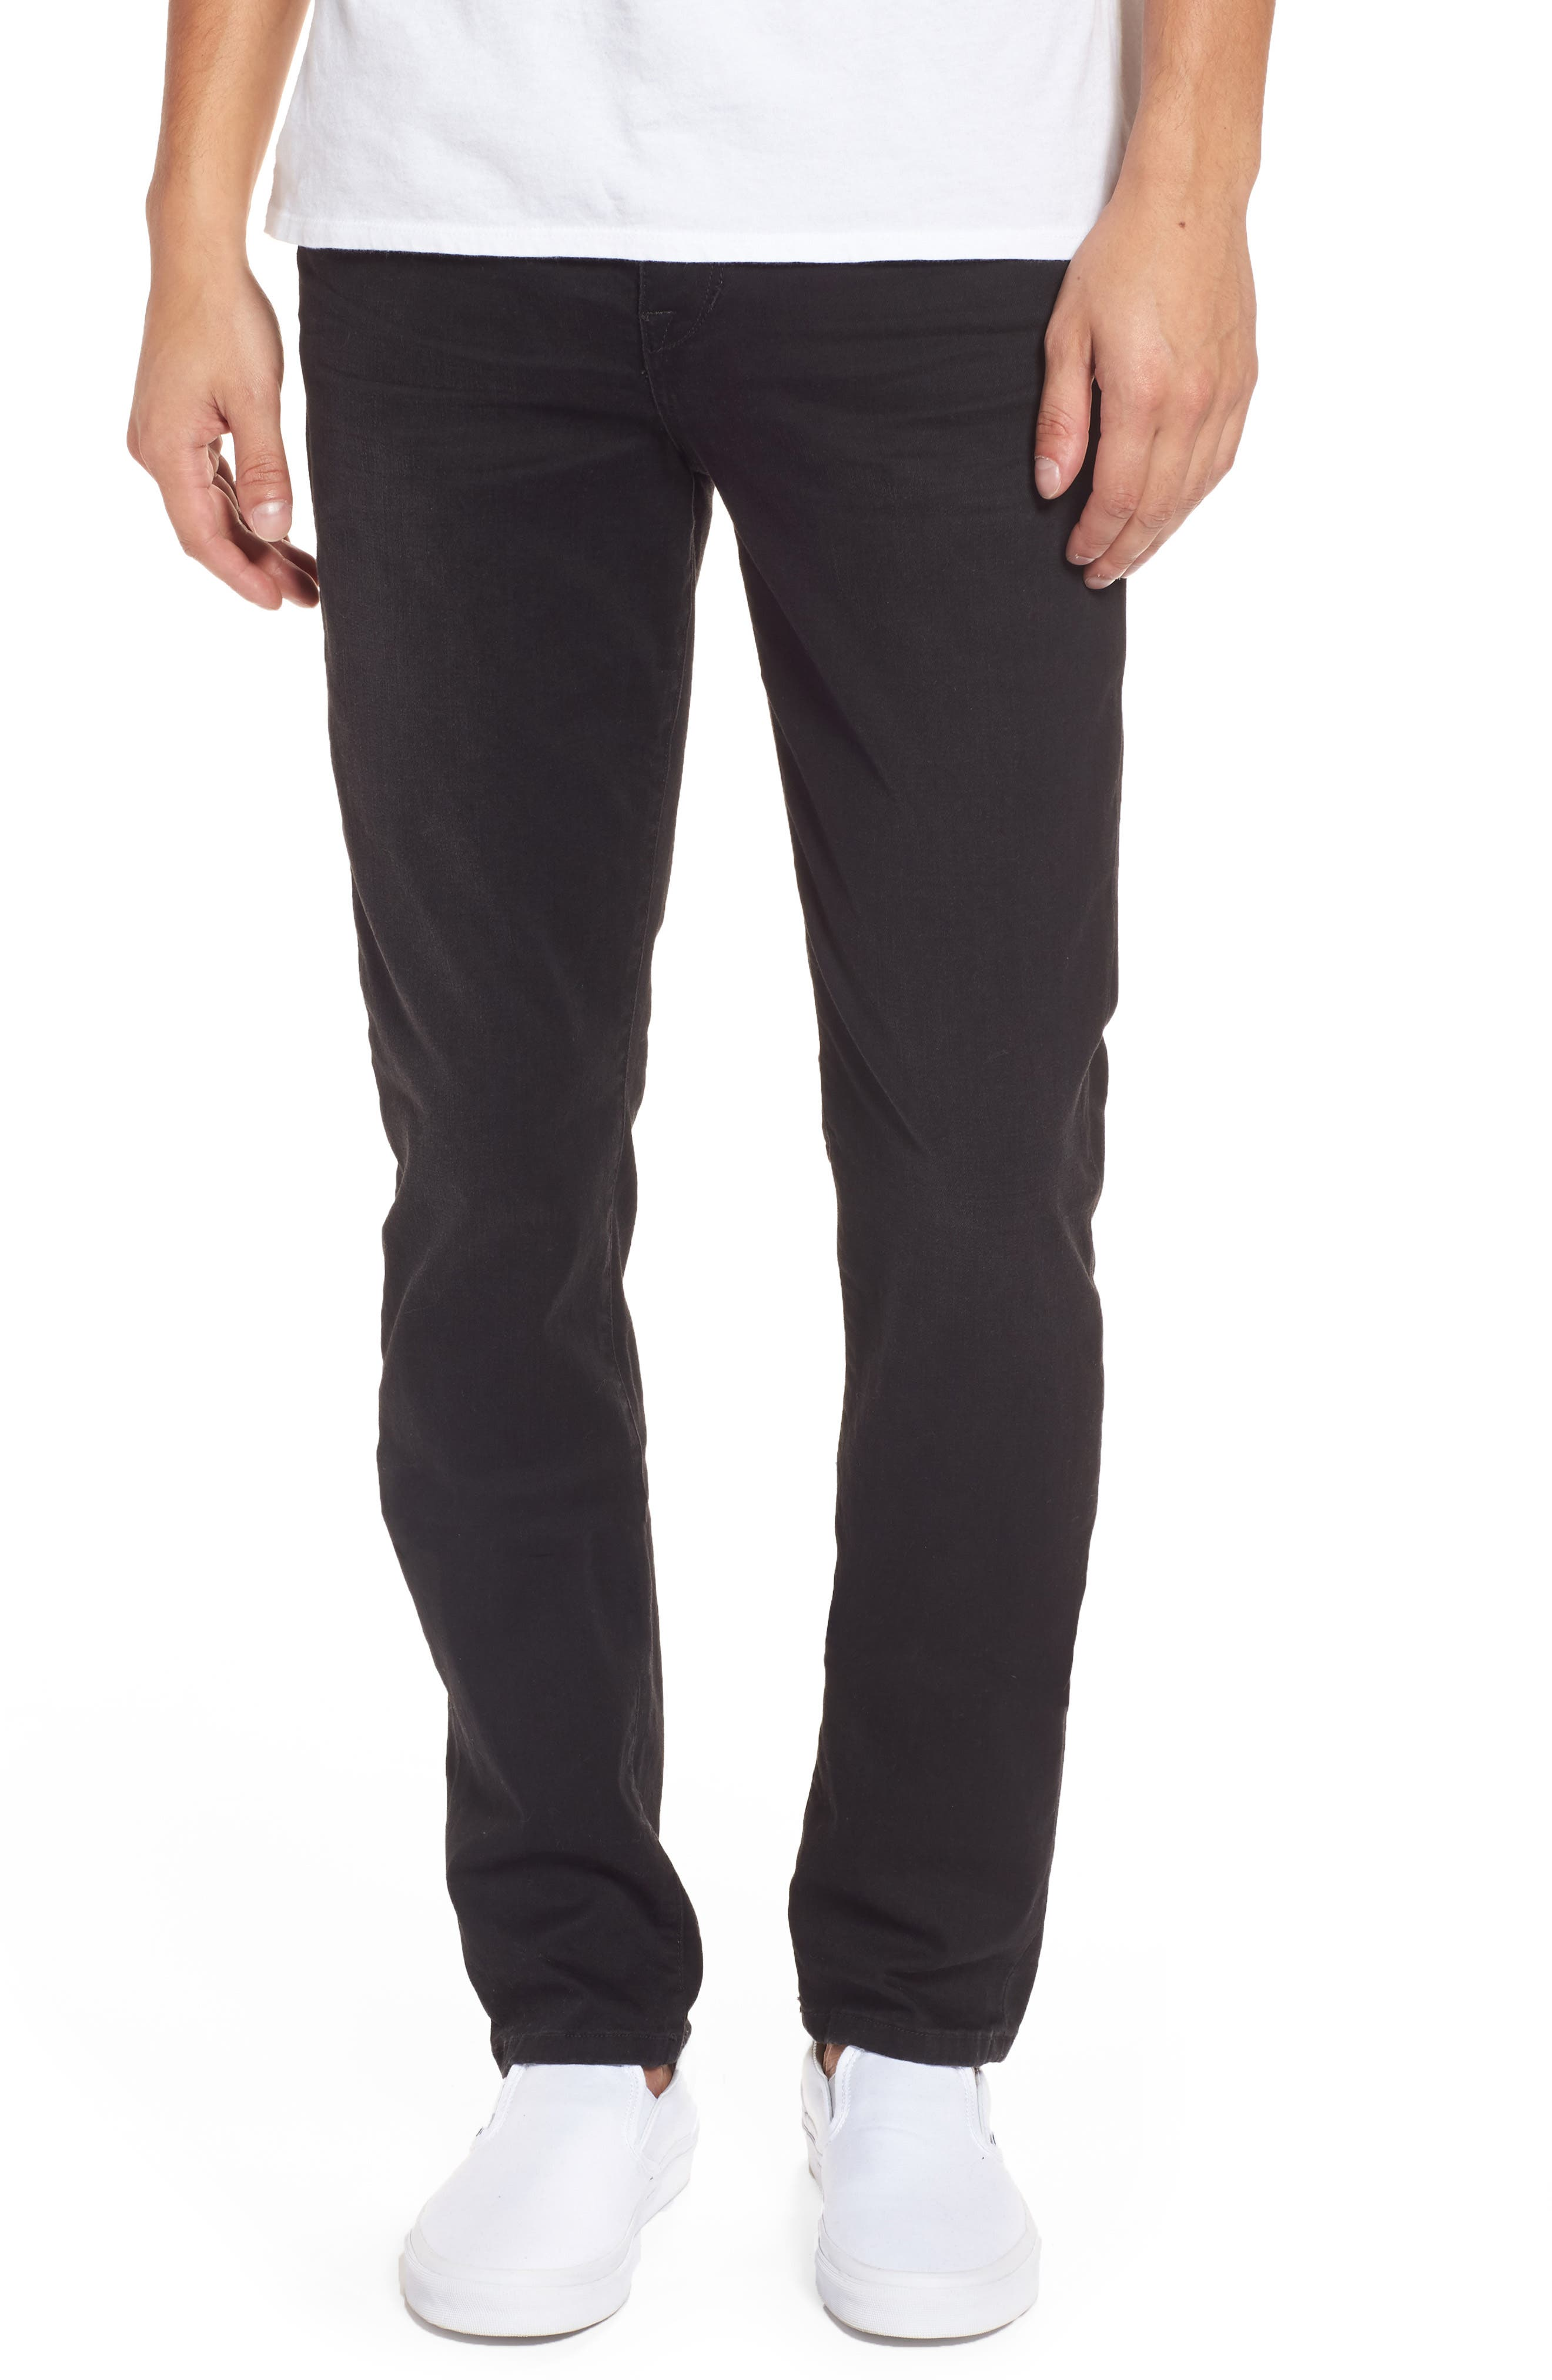 Soder Slouchy Skinny Jeans,                         Main,                         color, Diggie